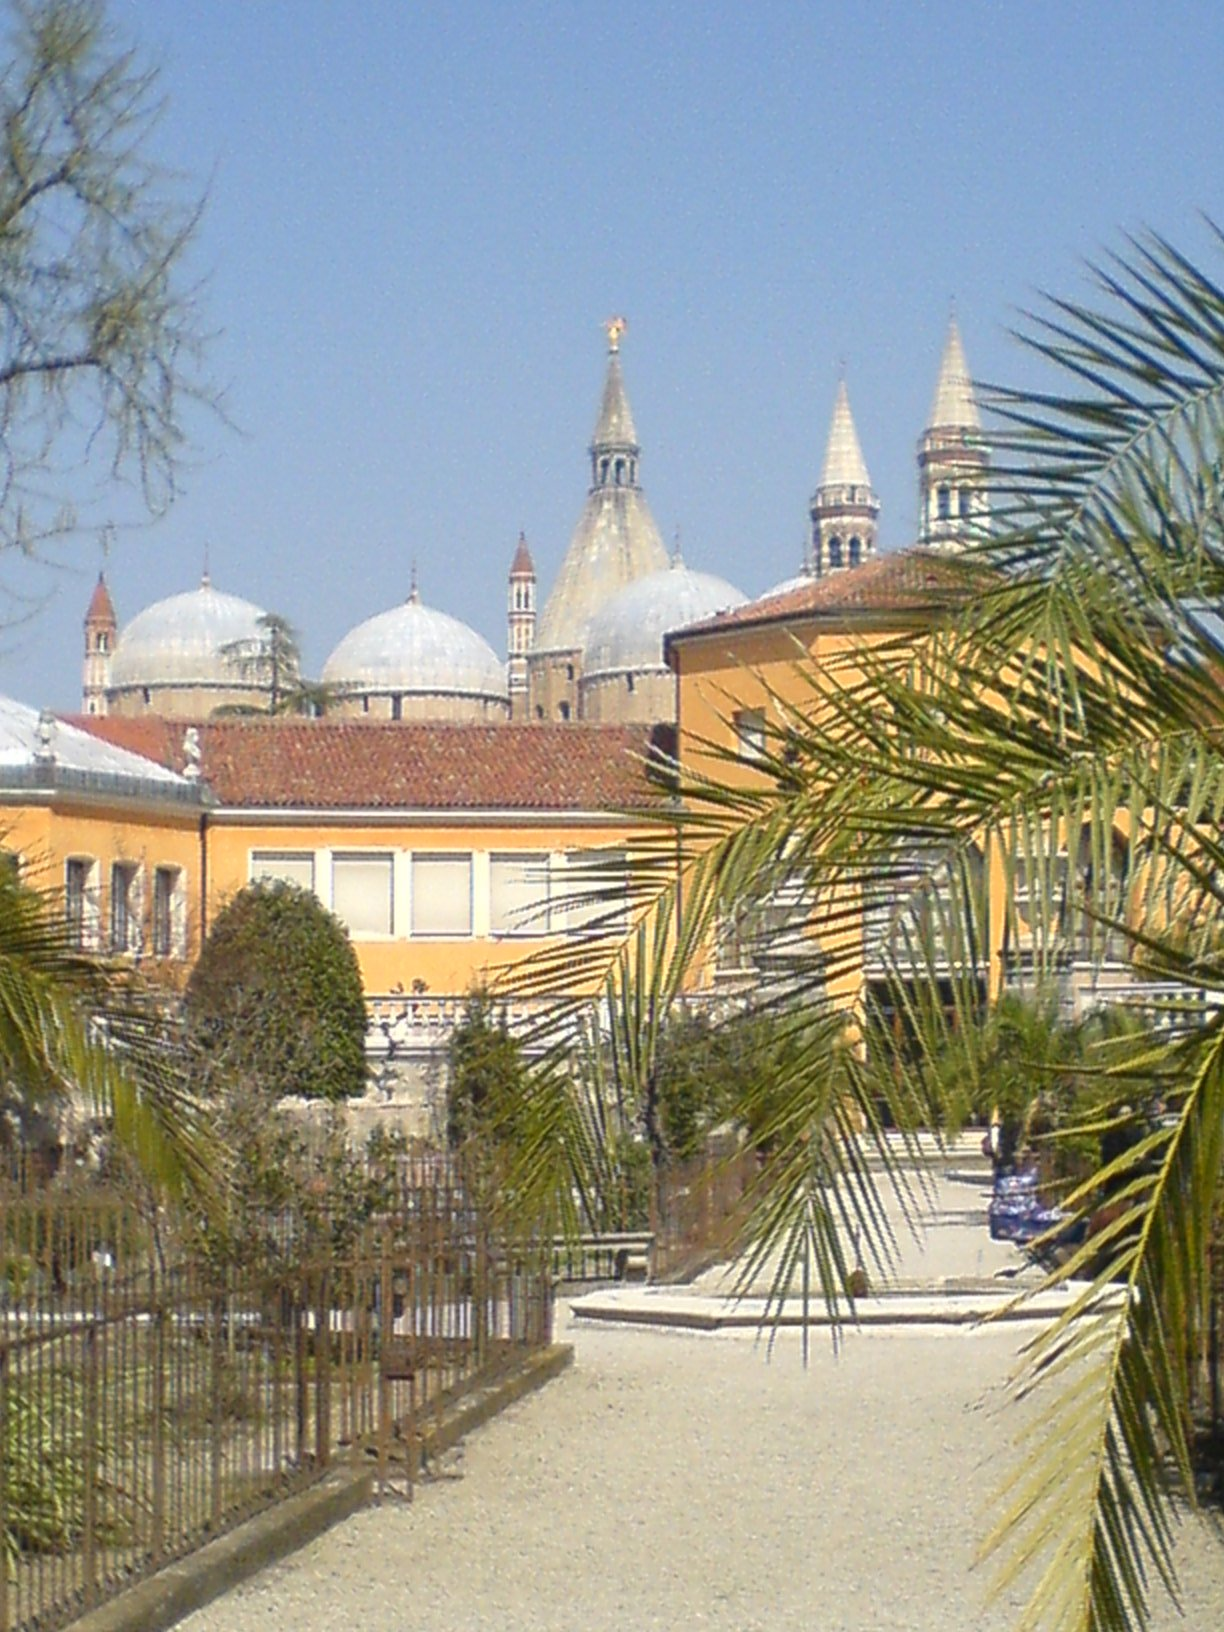 Padua Italy  city pictures gallery : The Botanical Garden of Padova today; in the background, the Basilica ...